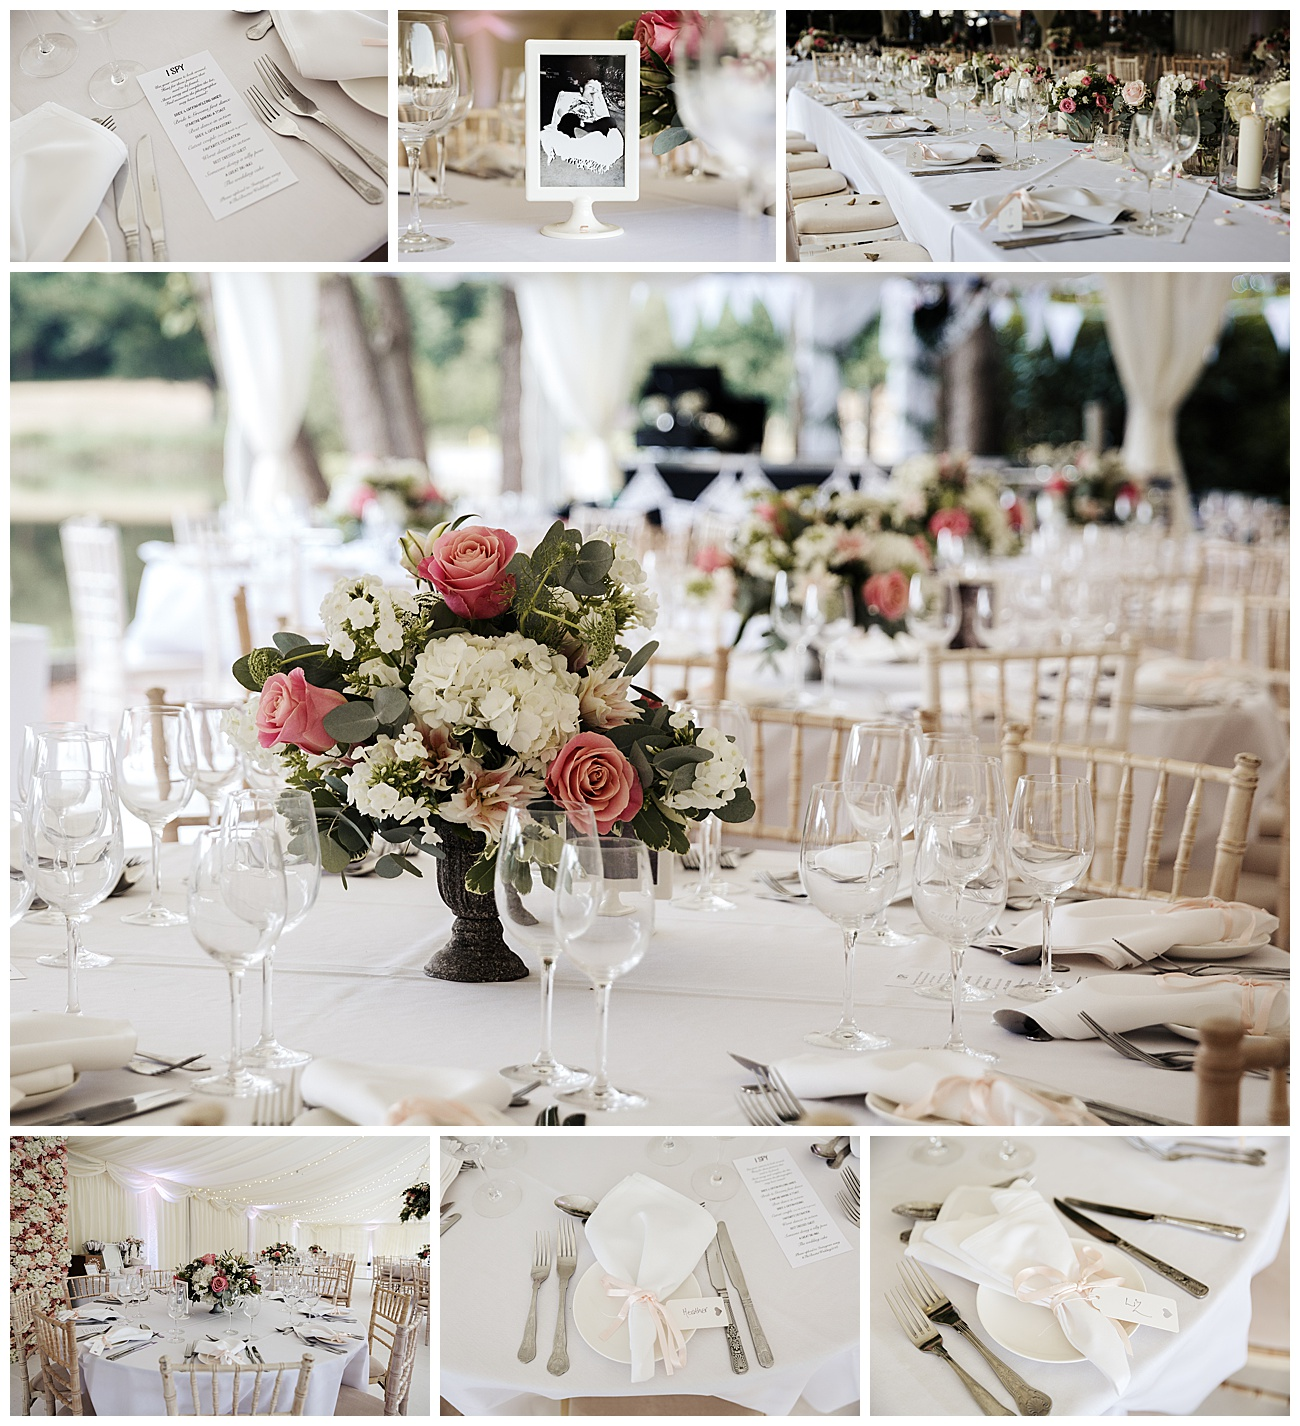 The wedding table details